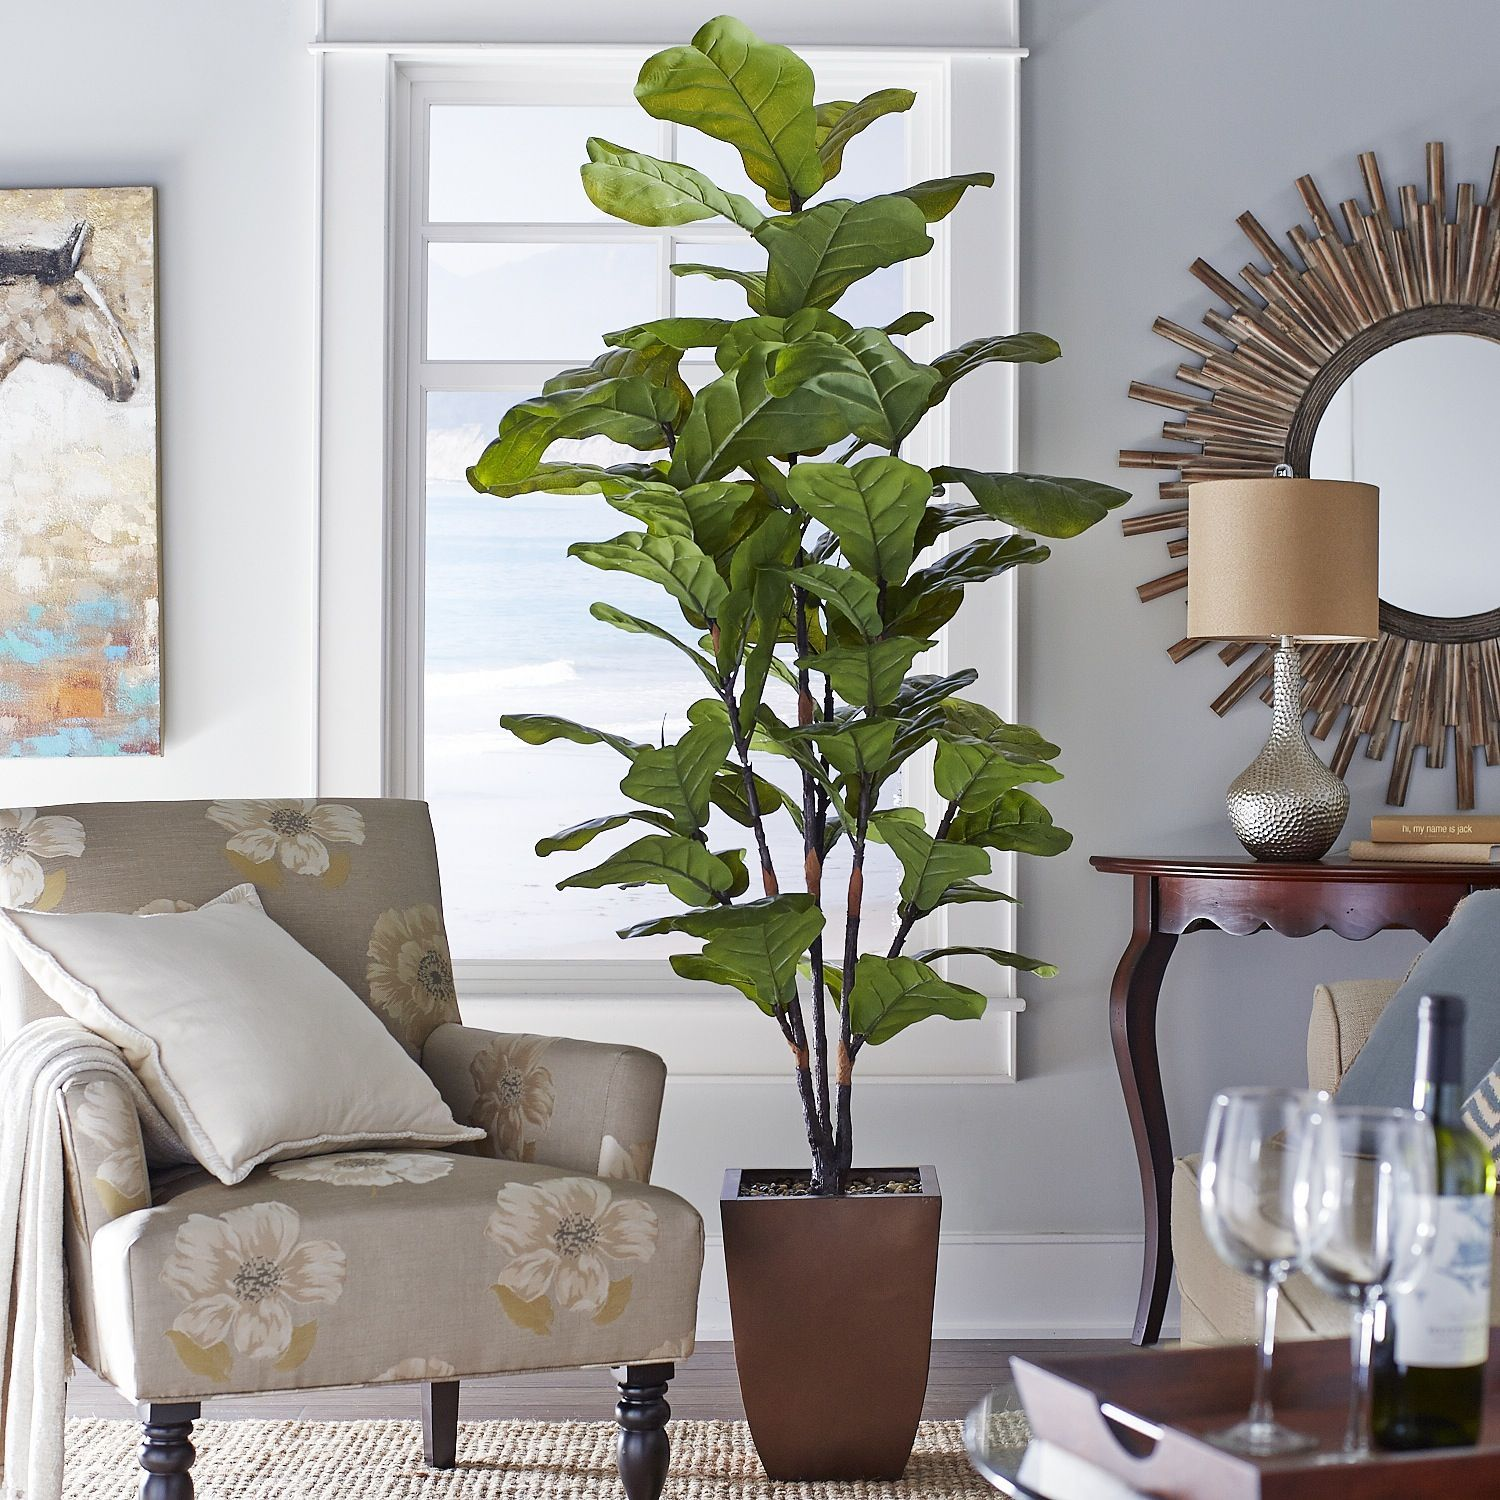 Big Plants For Living Room Faux Fiddle Leaf Fig Tree Pier 1 Imports I Love